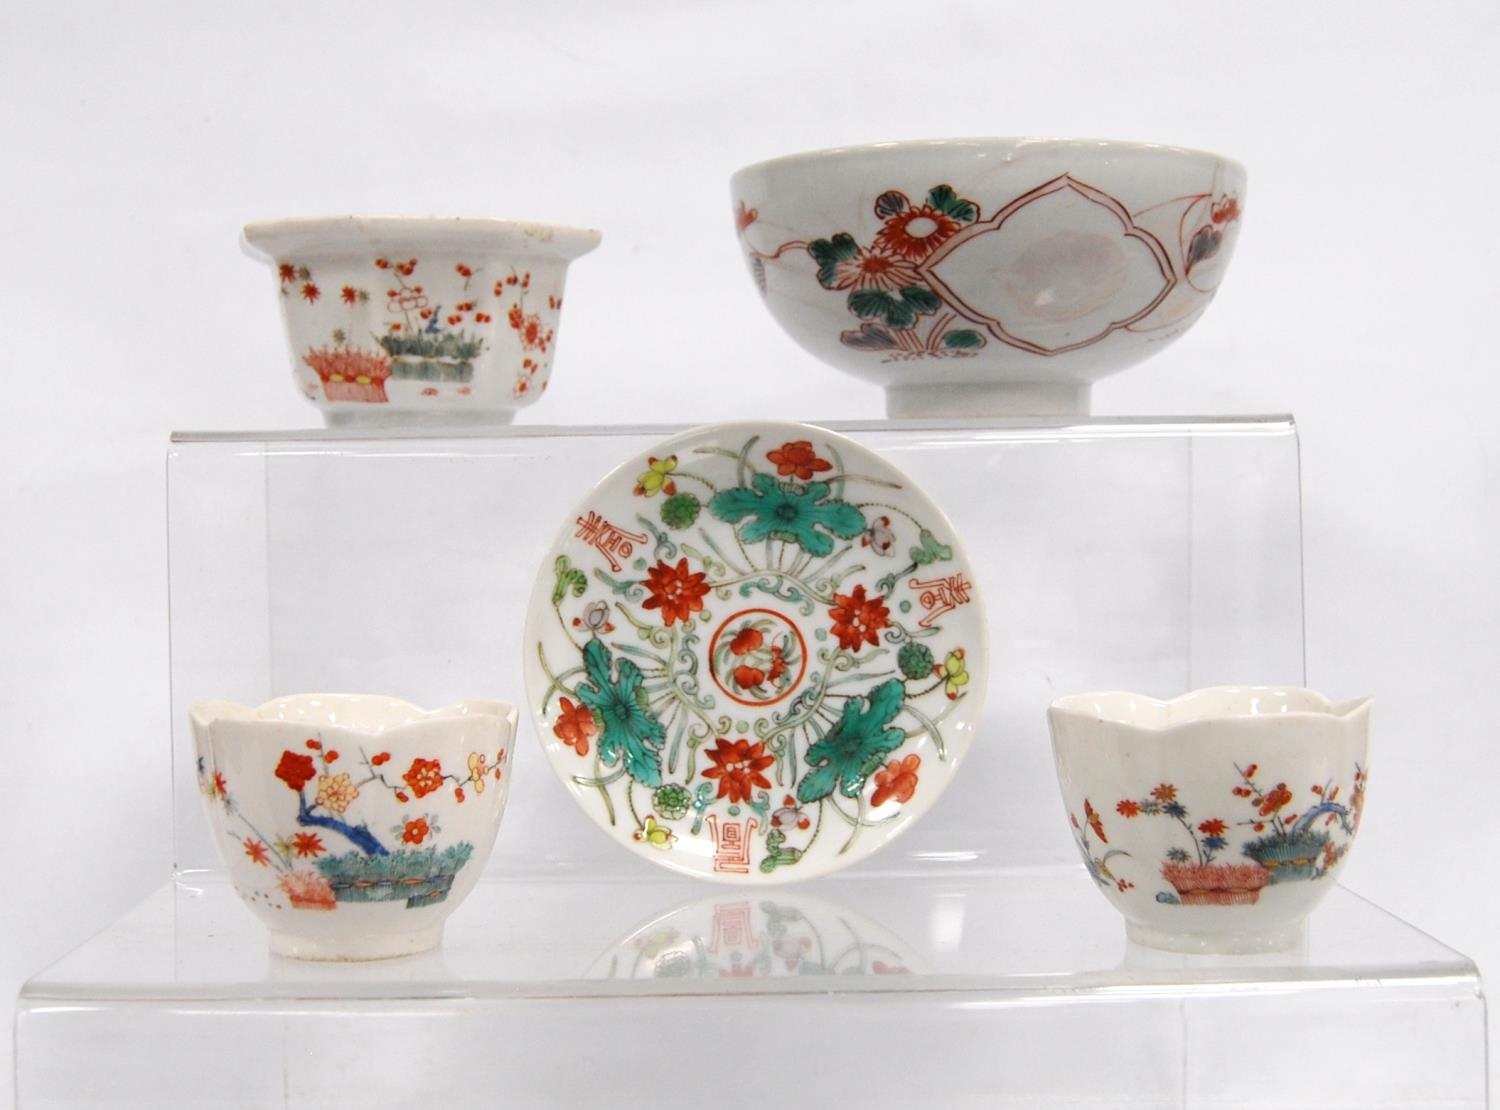 Two tea bowls, plate, octagonal bowl and a larger bowl, 14.5cm diameter. (5)